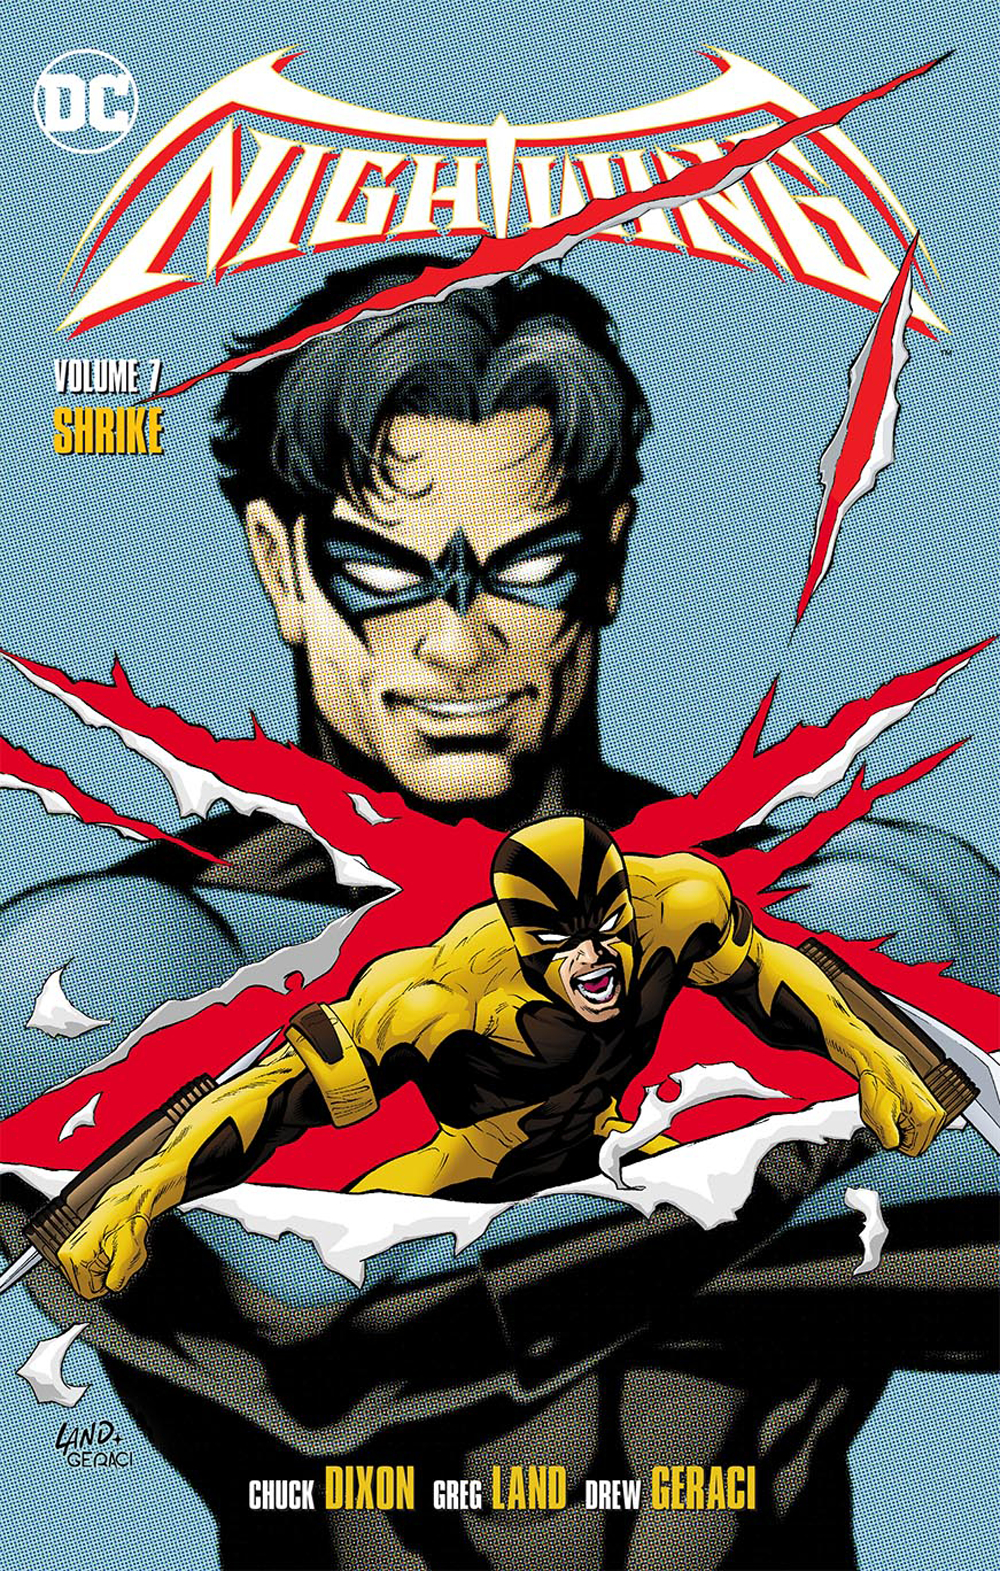 NIGHTWING TP VOL 07 SHRIKE